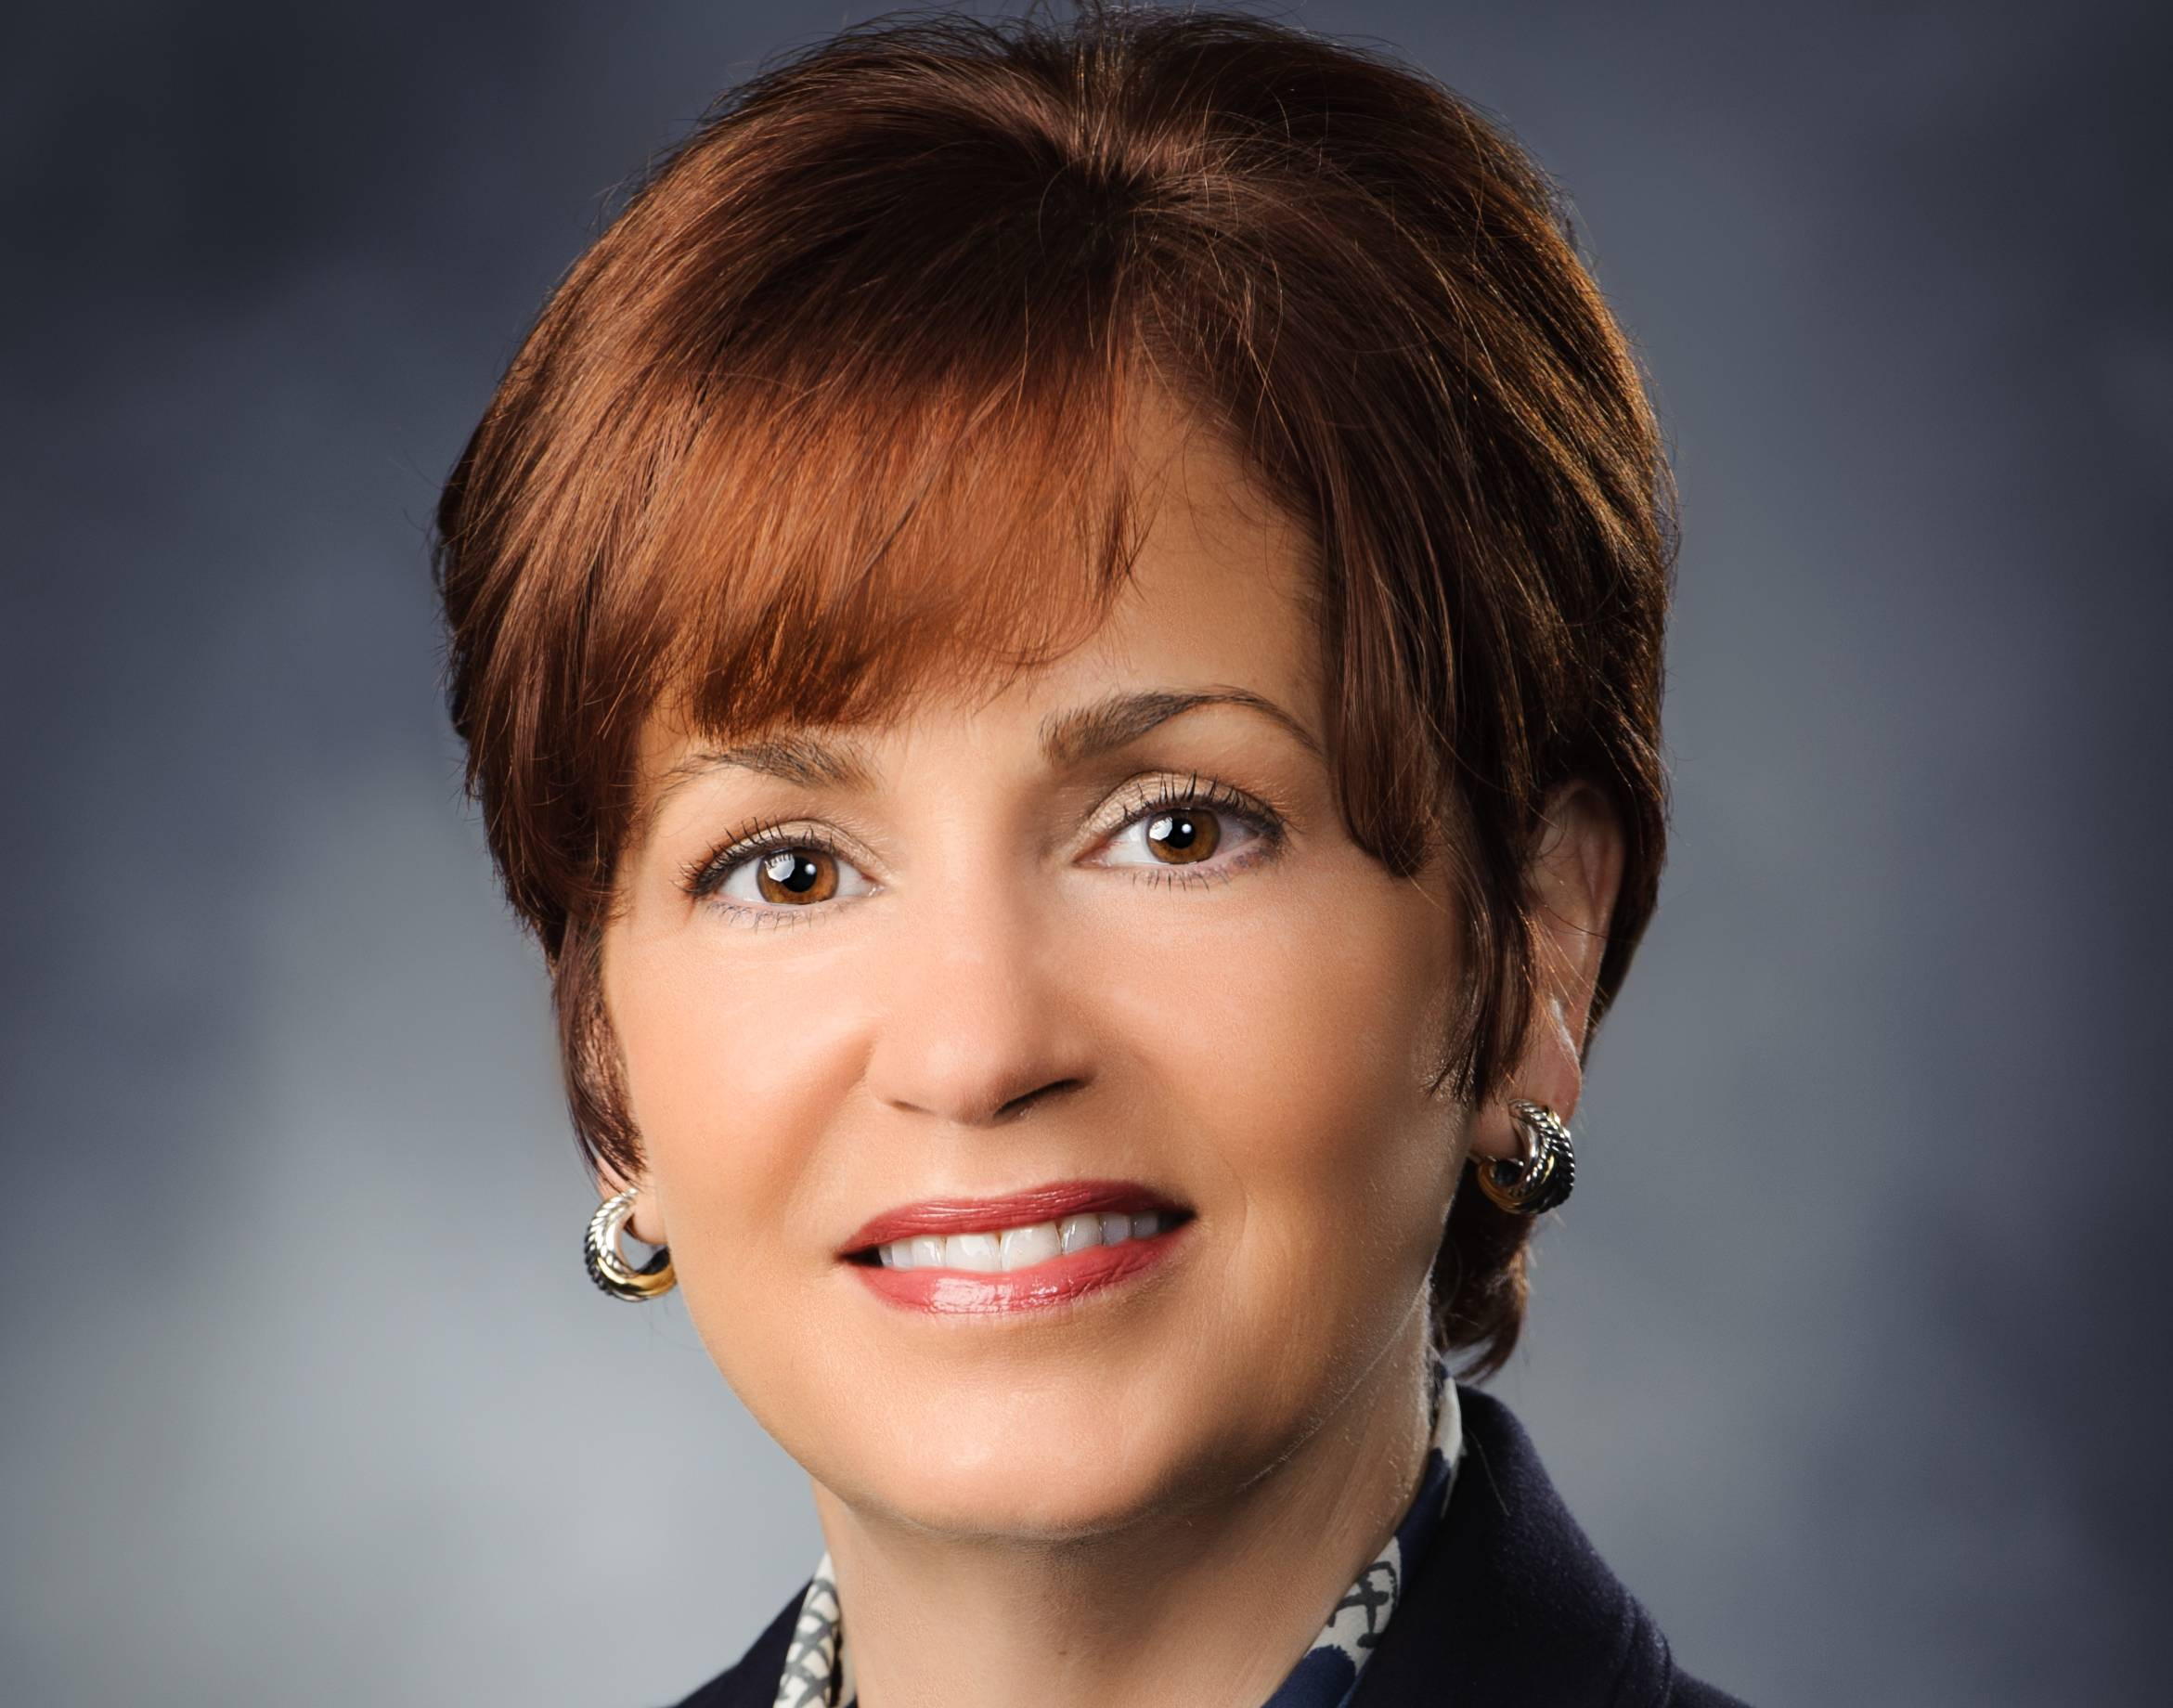 <h1>Sondra Barbour</h1> In April, Barbour became head of Lockheed's IT business from CIO, where she helped build out the cybersecurity biz. With $8.8 billion in revenue, IS&GS is the second largest of the defense contractor's five divisions. It has been hit hardest by government budget cuts.